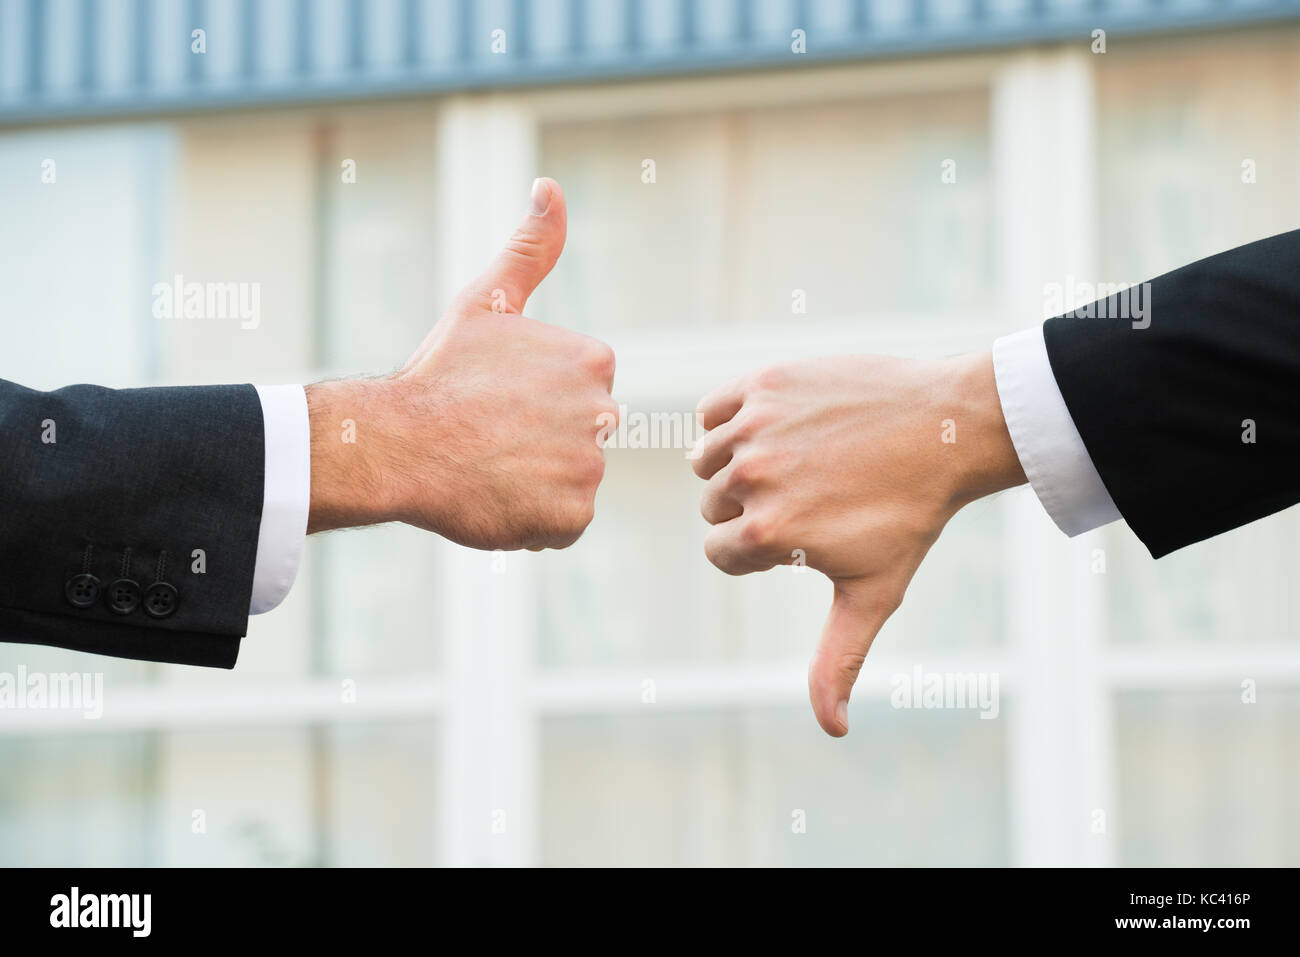 Cropped hands of businessmen showing like and dislike signs outdoors - Stock Image